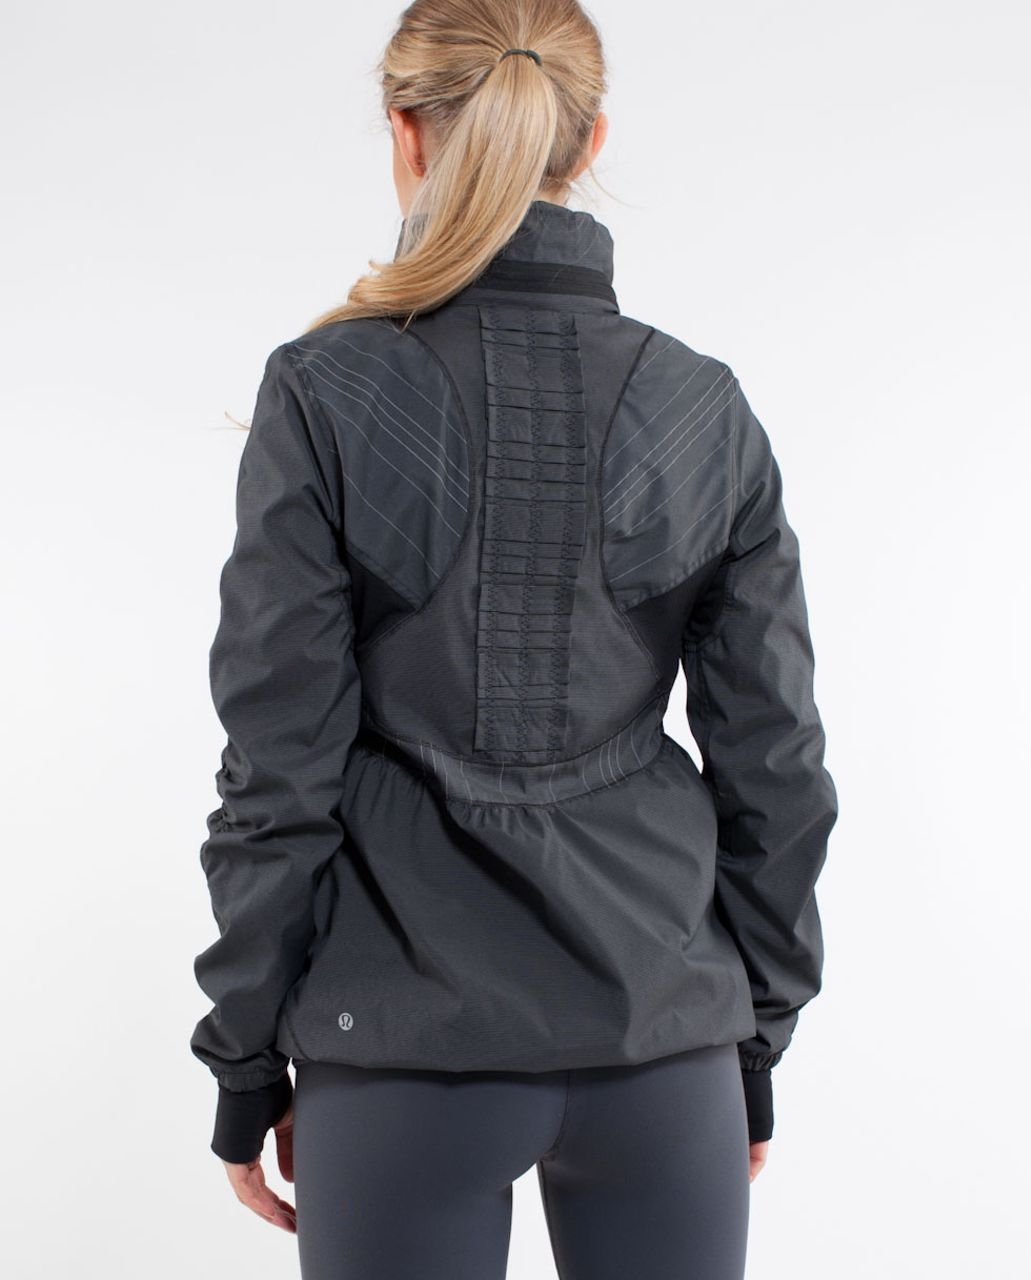 Lululemon Run:  Hustle Jacket - Black Microstripe